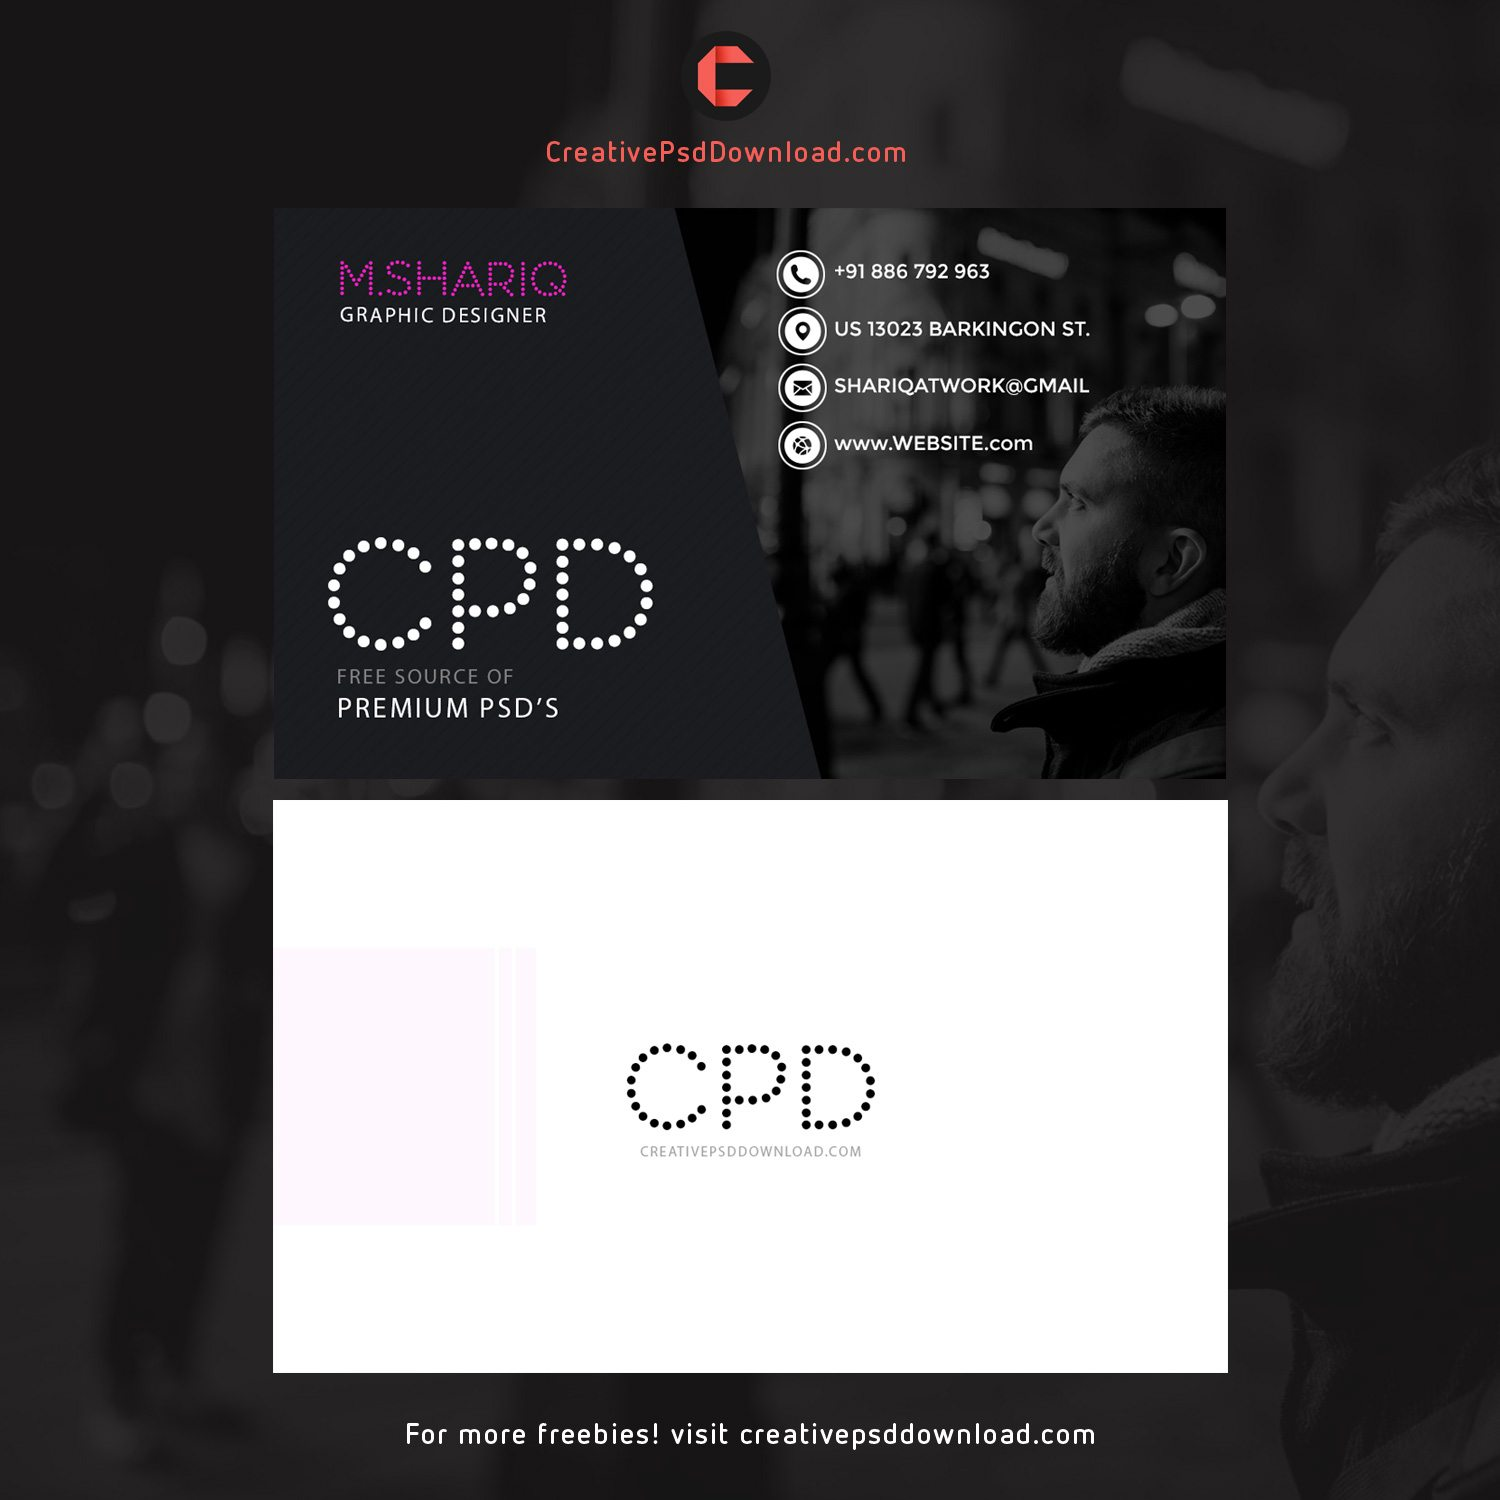 Dark Theme Graphic Designer Business Card Template